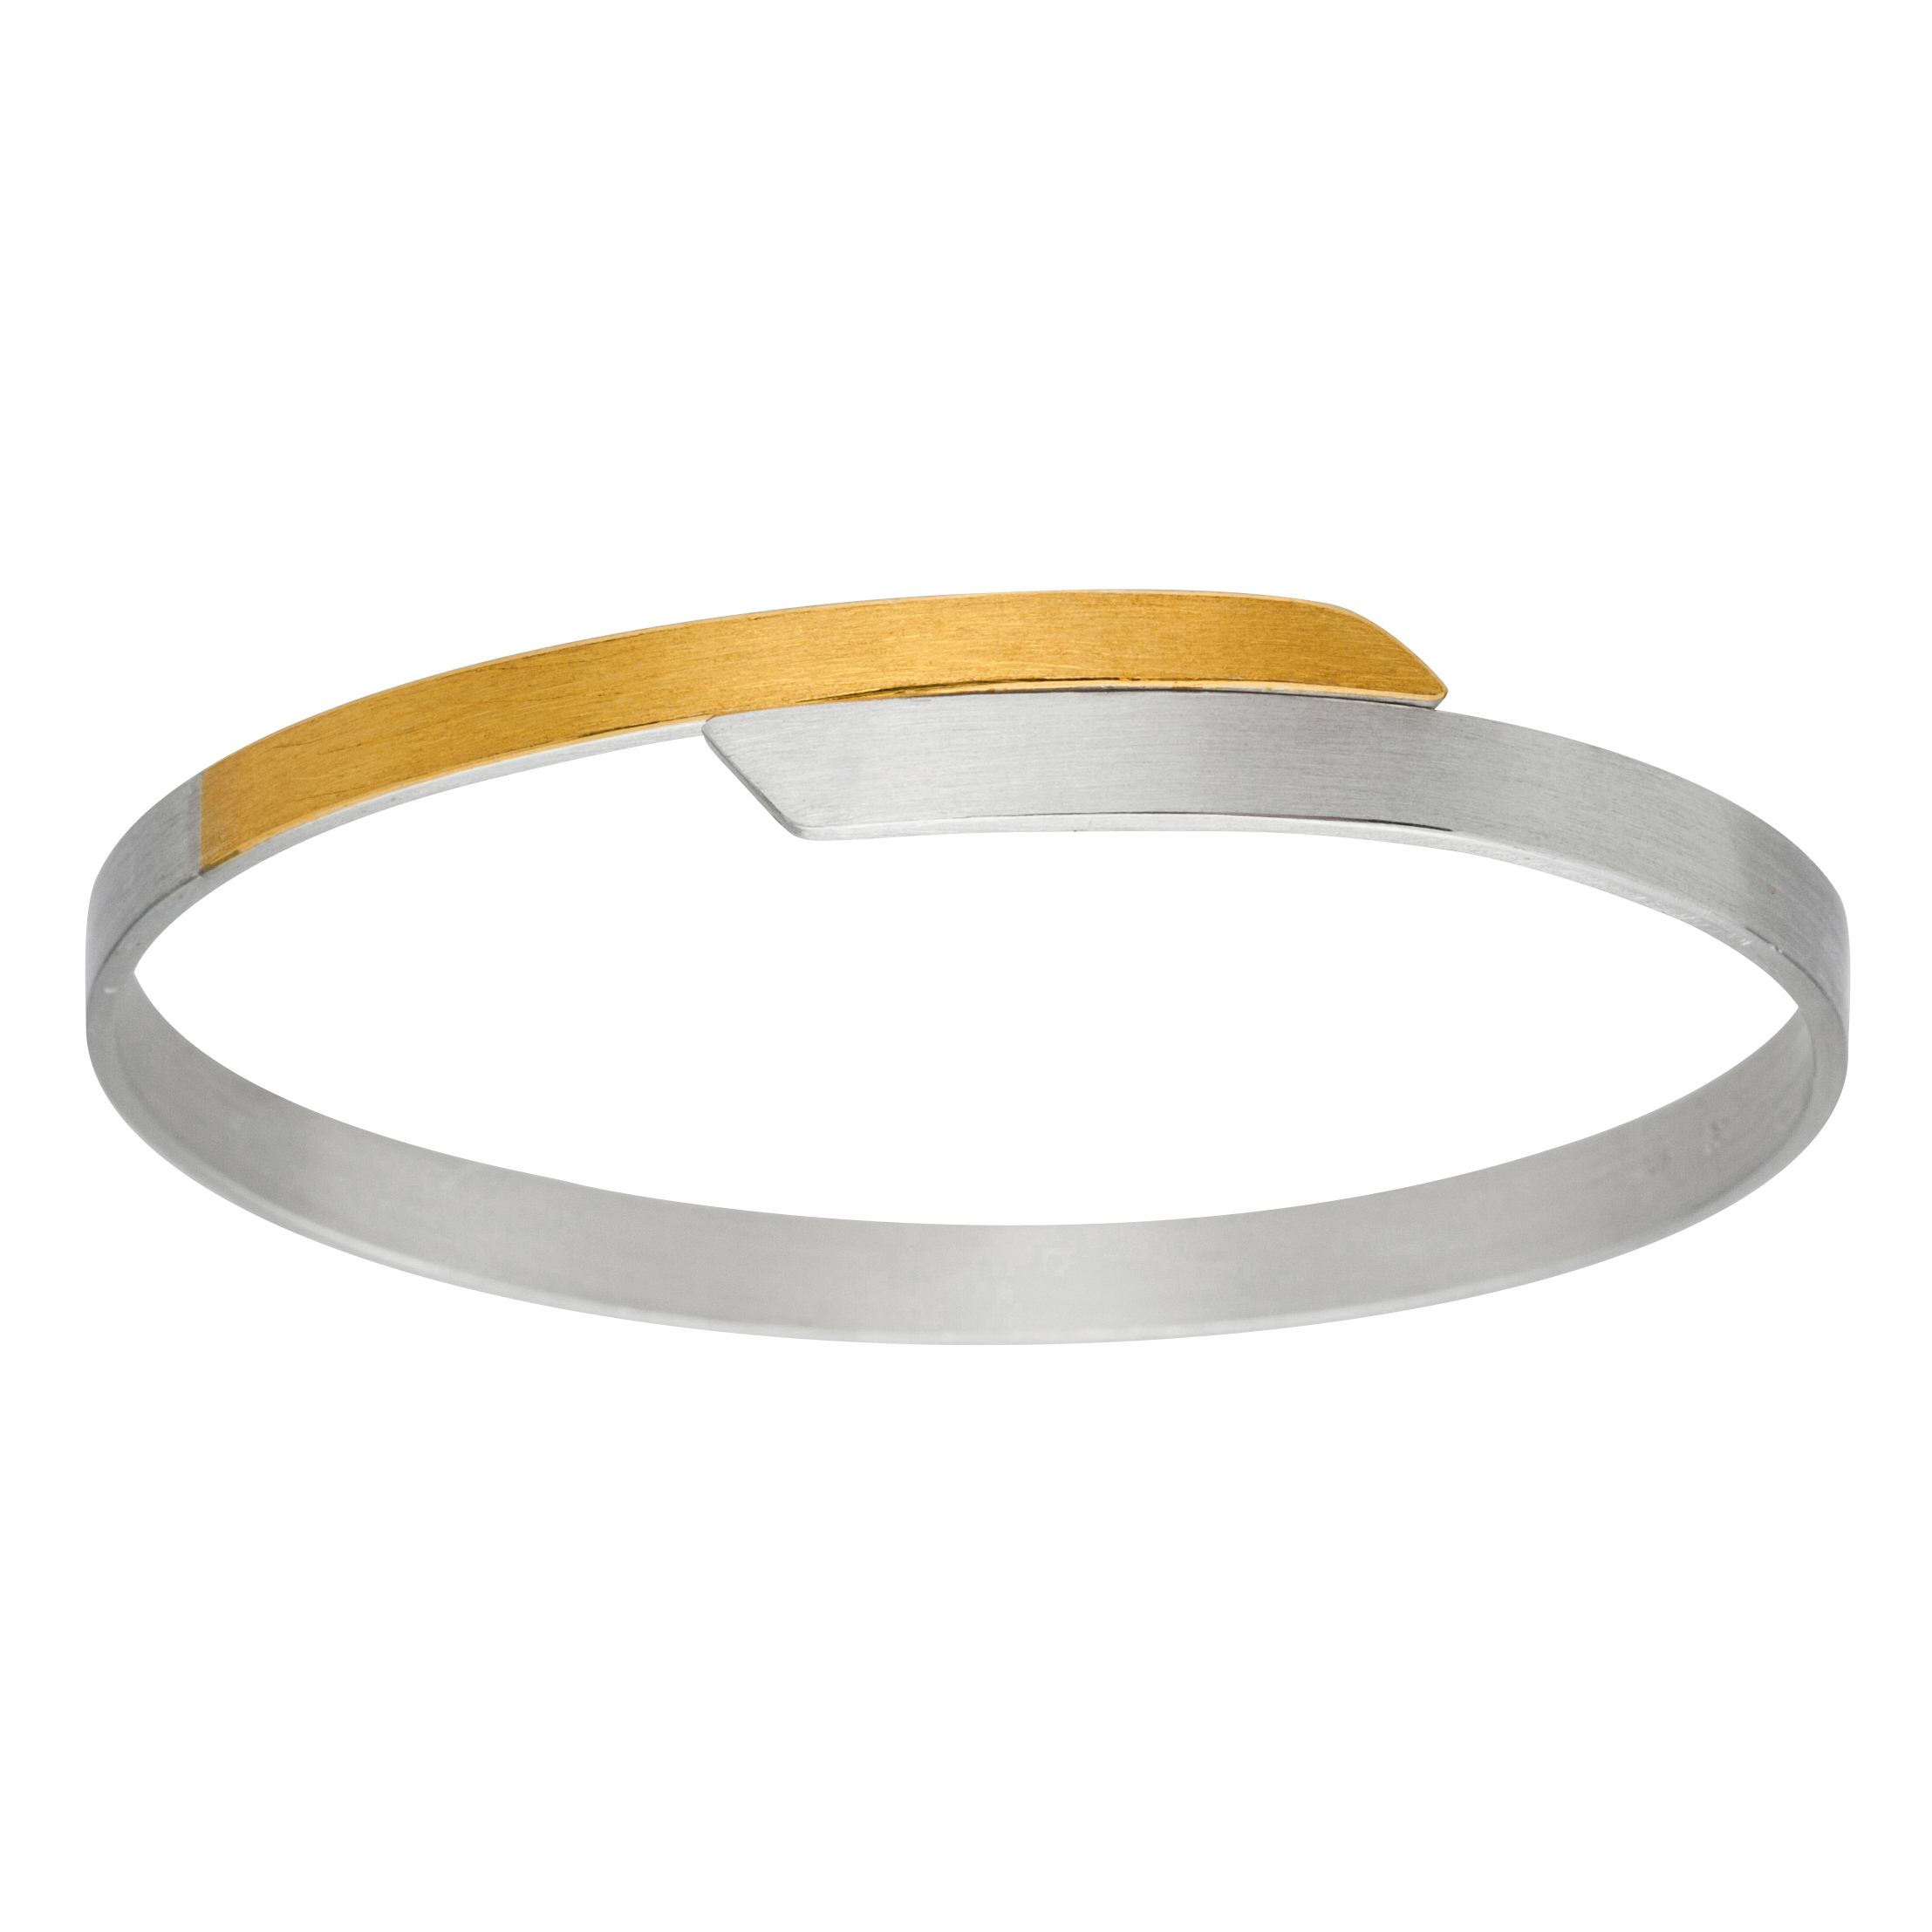 Manu Gold & Silver Polished Bangle